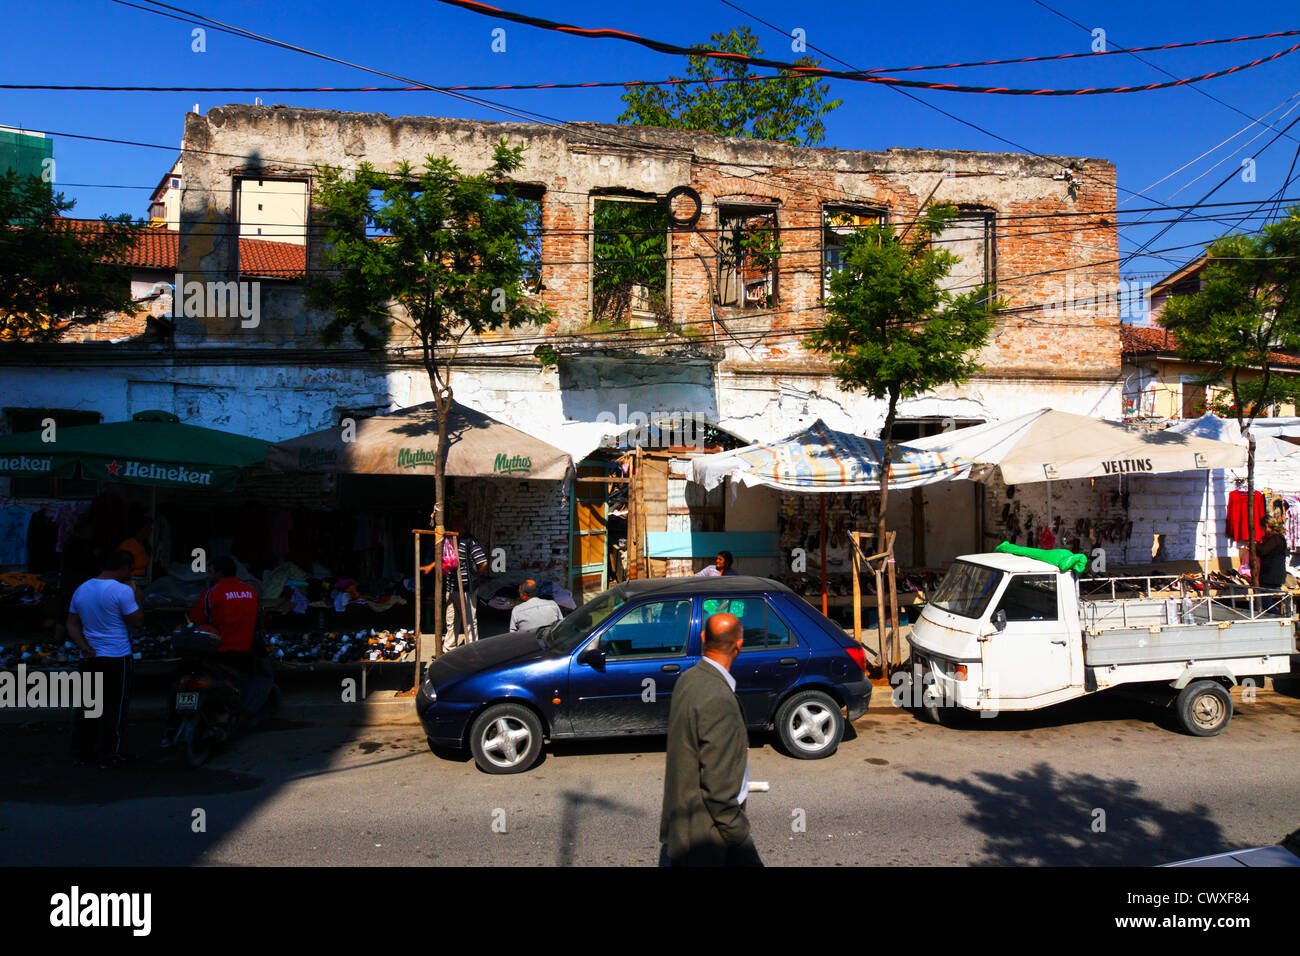 Ramshackle buildings and bazaar stalls in Tirana downtown, Albania - Stock Image